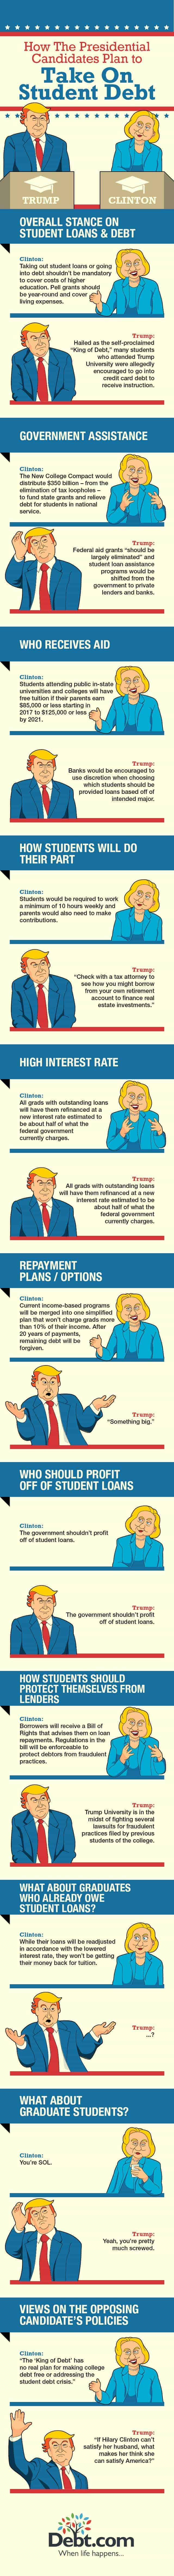 An infographic depicting the positions of Donald Trump and Hillary Clinton on student loan policy